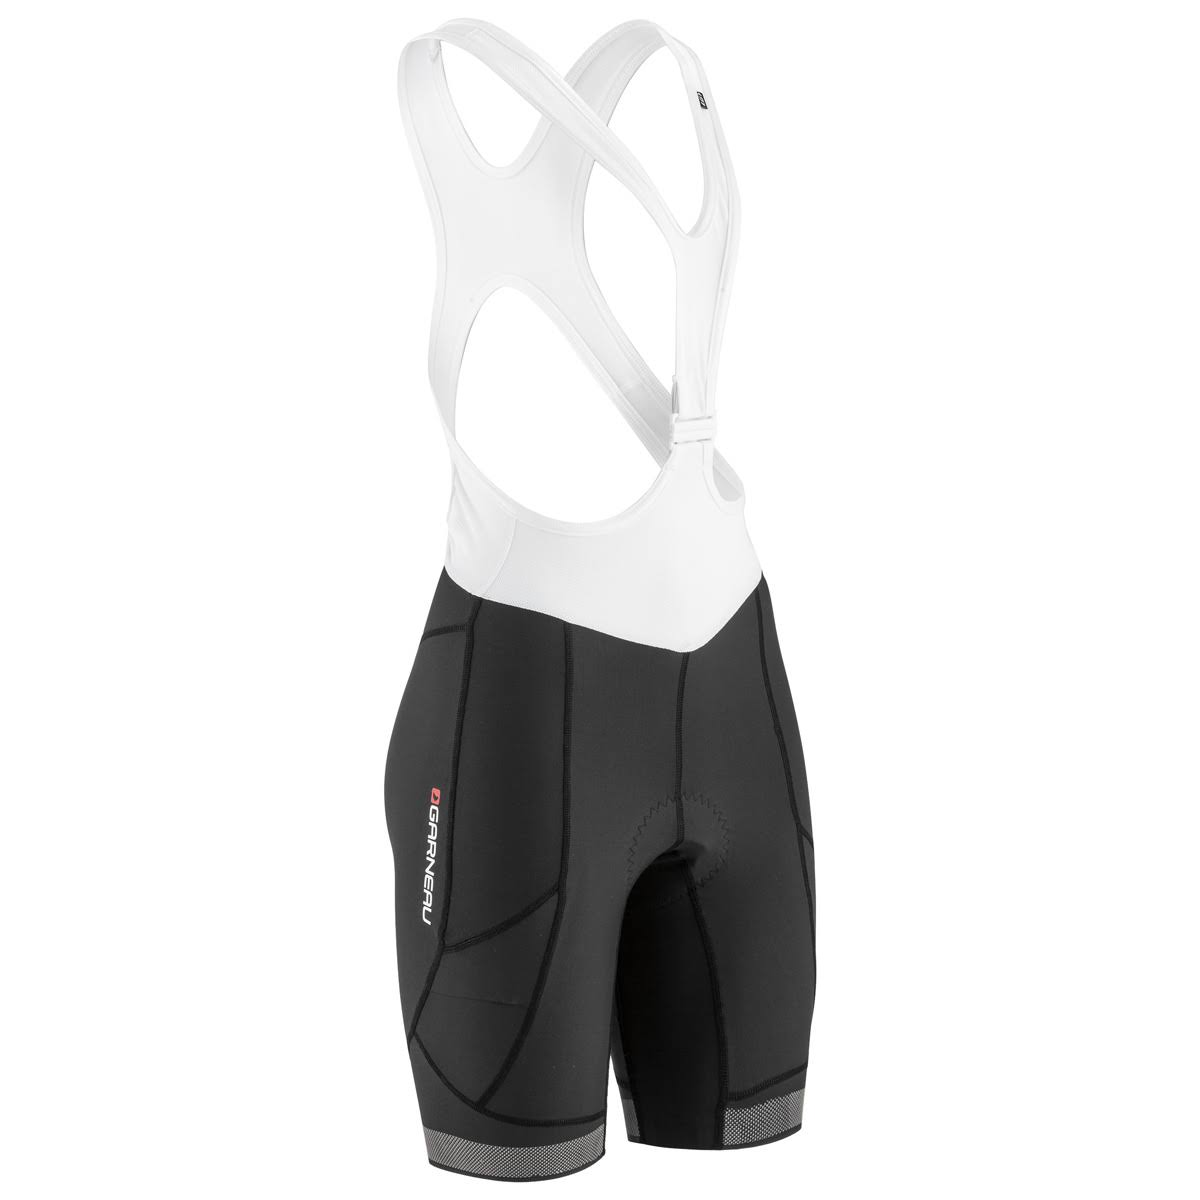 Louis Garneau Cb Neo Power Rtr Bib Short - Black/White, Large